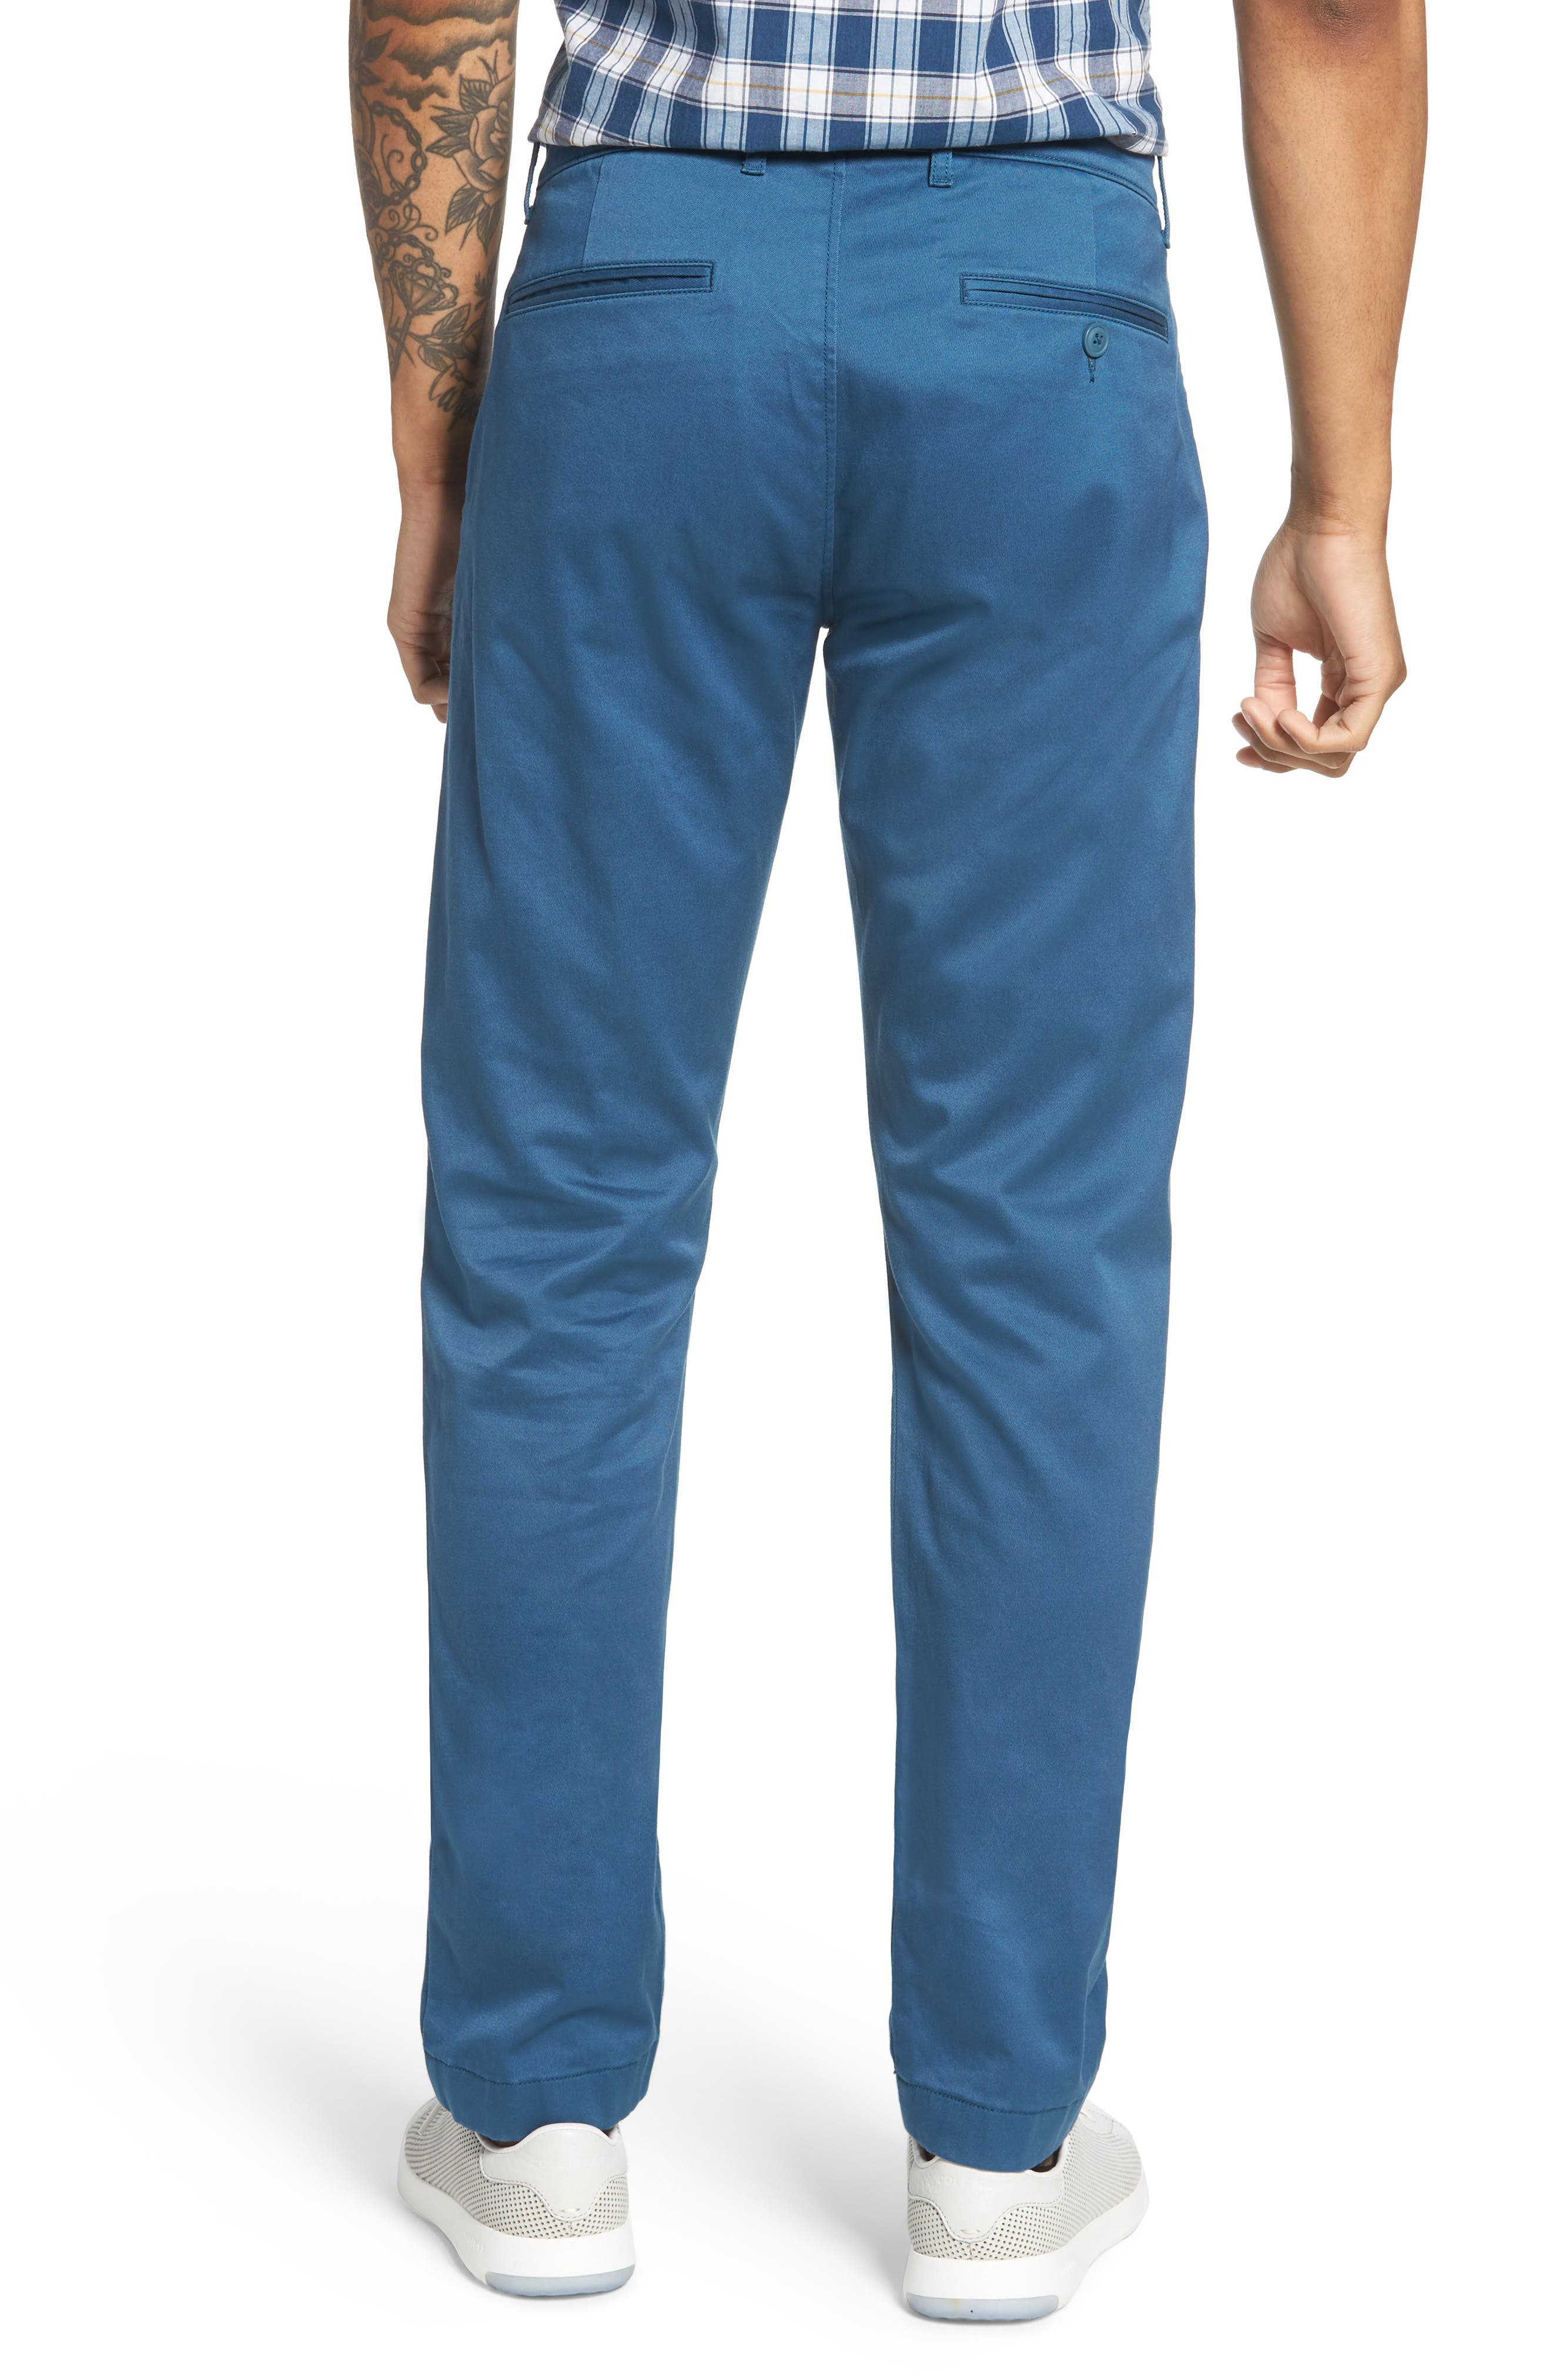 484 Slim Fit Stretch Chino Pants,                             Alternate thumbnail 21, color,